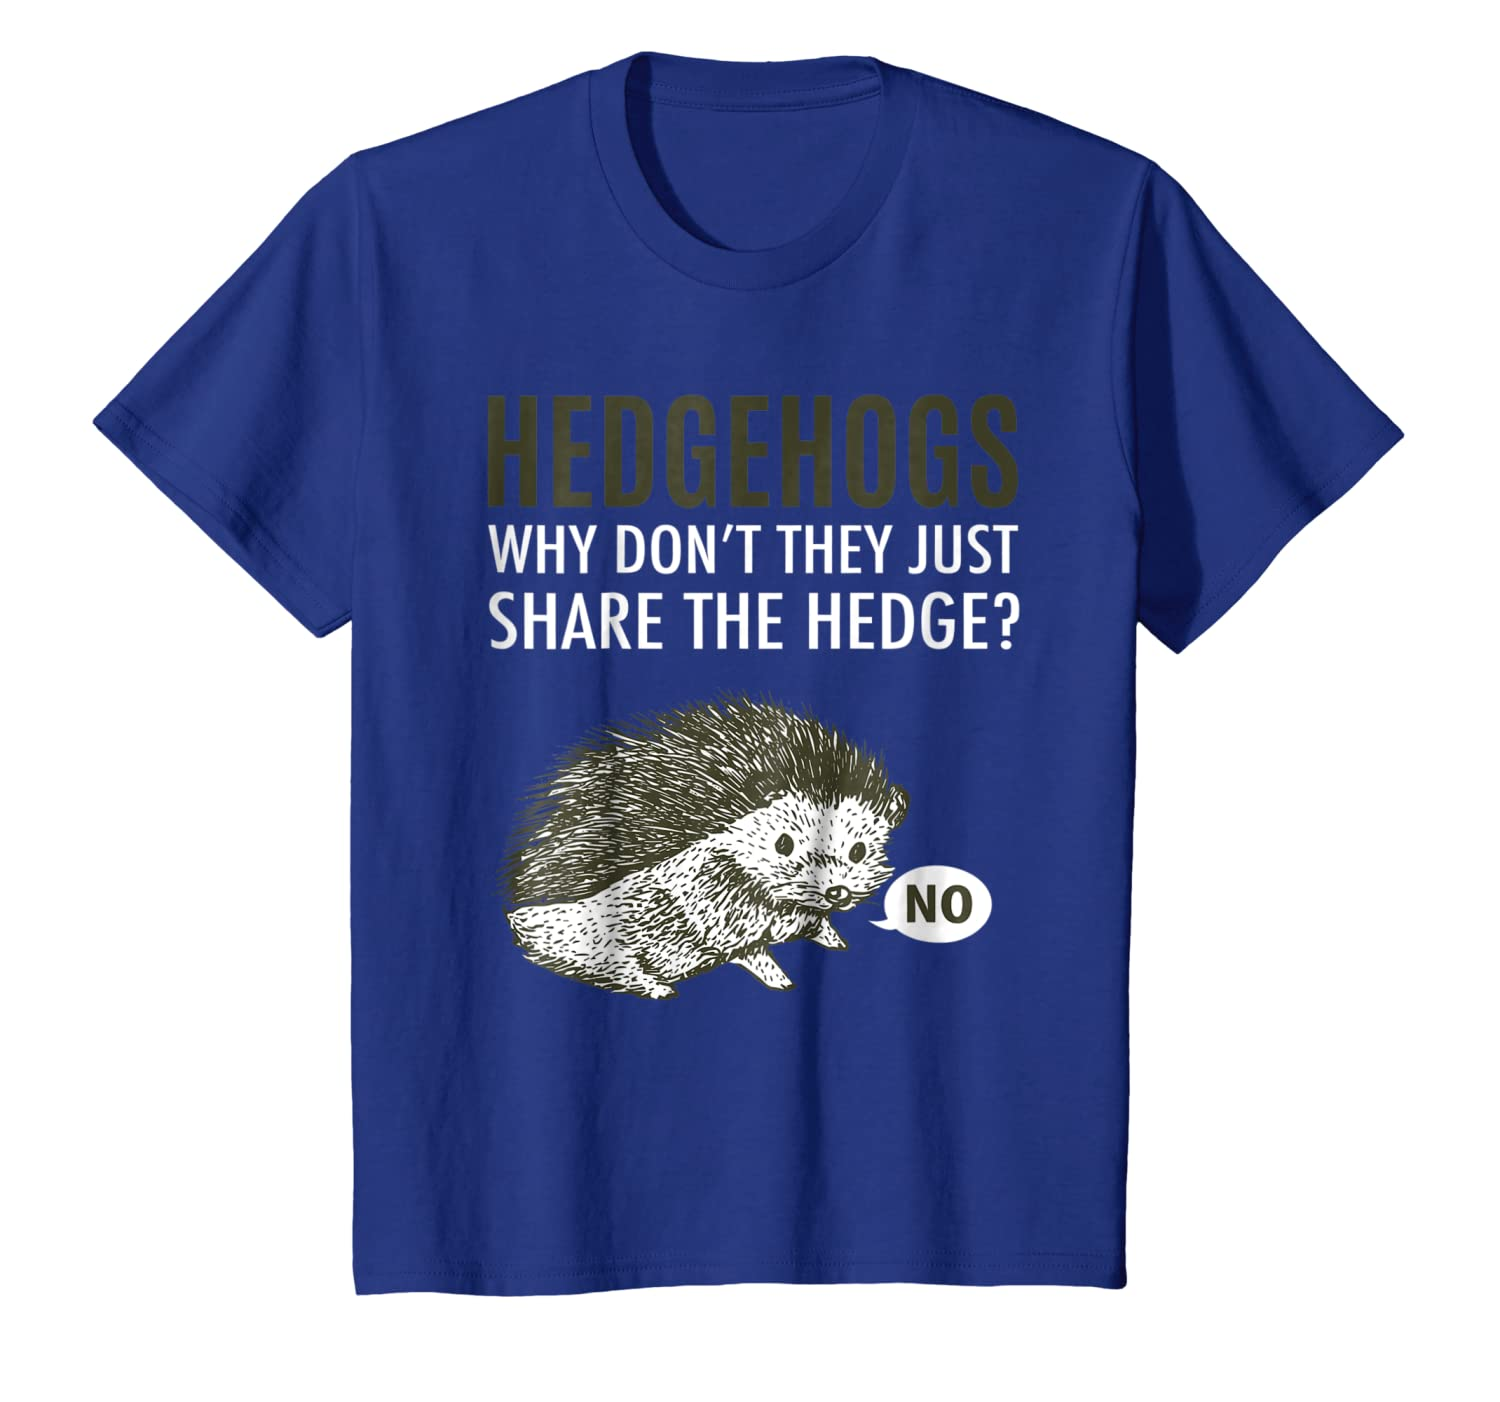 d64ccc746 Amazon.com: Hedgehogs Why Don't They Just Share The Hedge T-shirt: Clothing